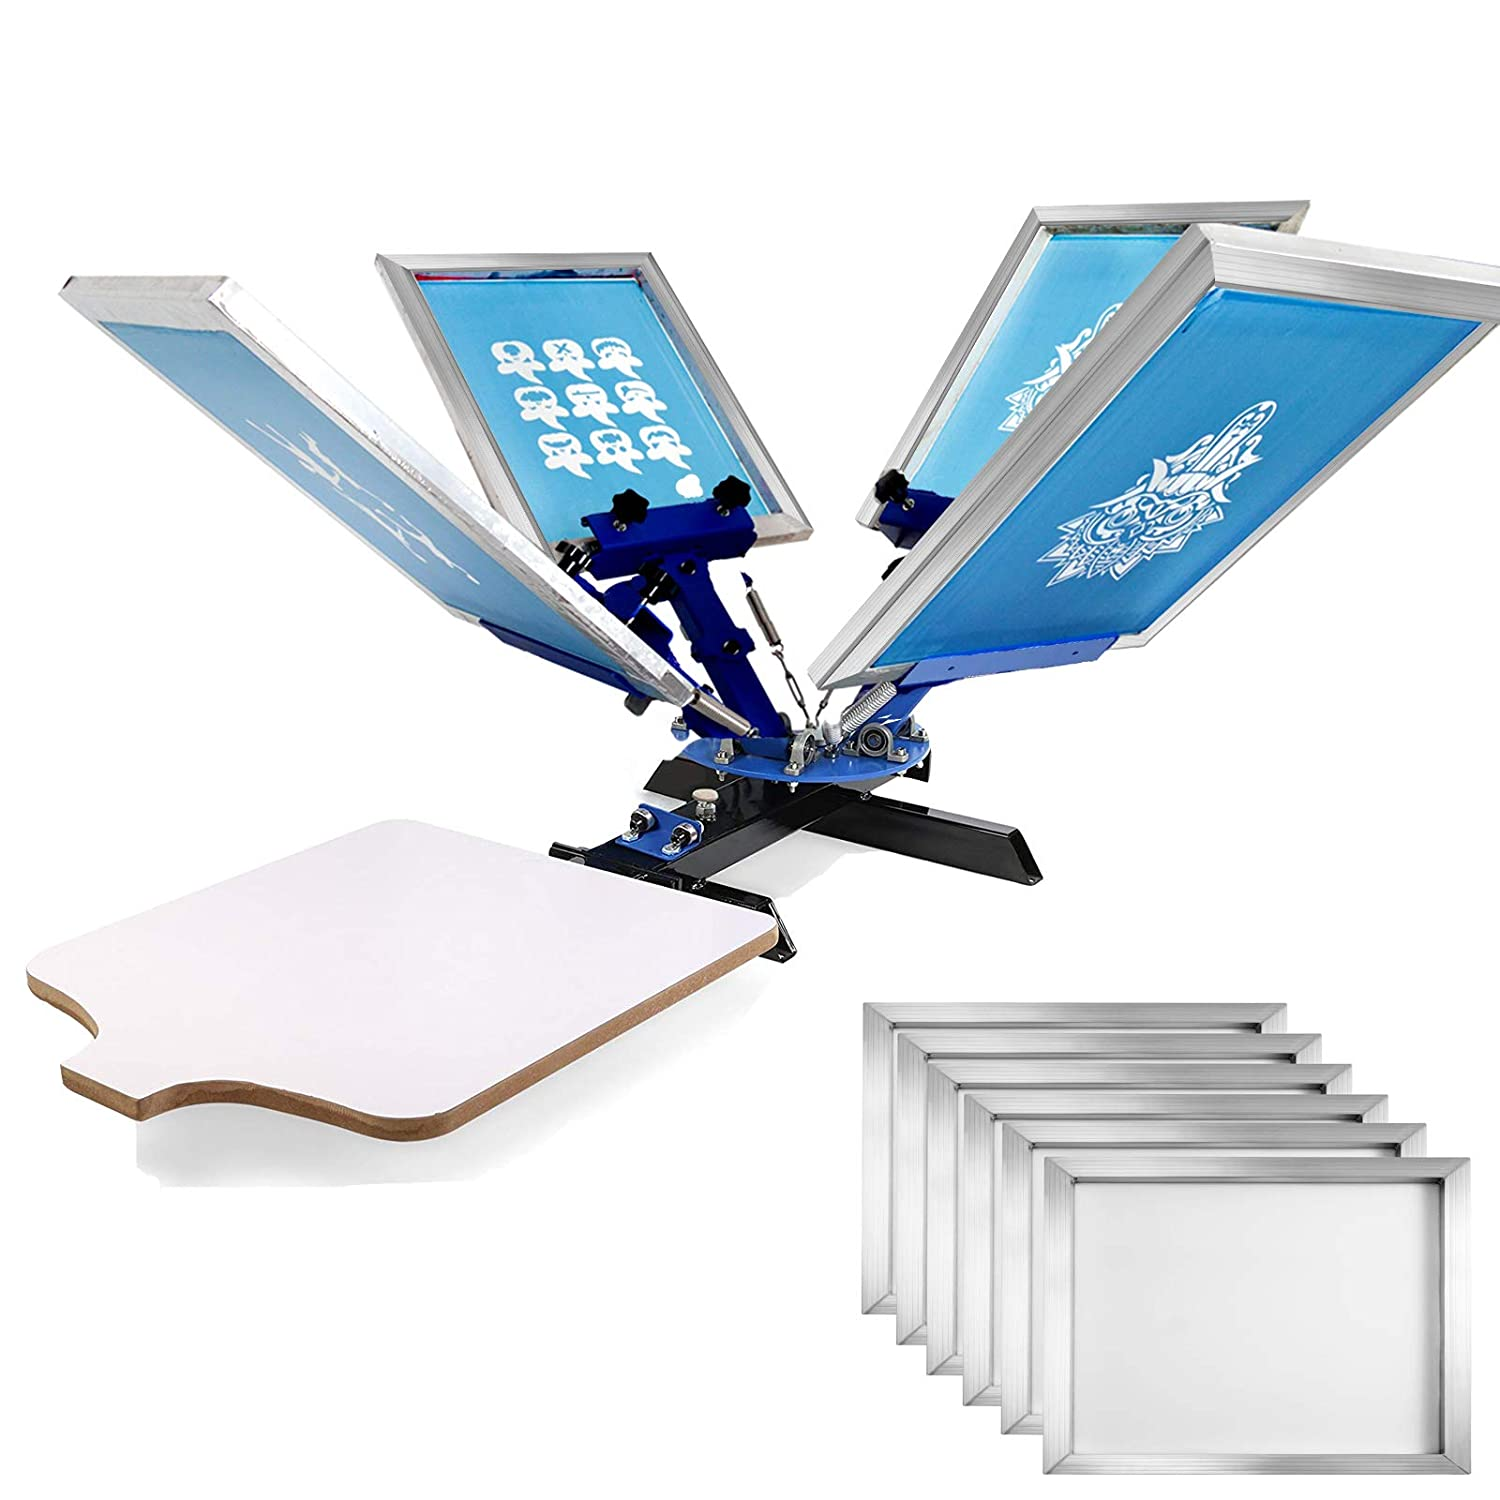 VEVOR Screen Printing 4 Color 2 Station Screen Printing Machine and 6 Pieces 20x24 Inch Aluminum Screen Frame with White 110 Count Mesh